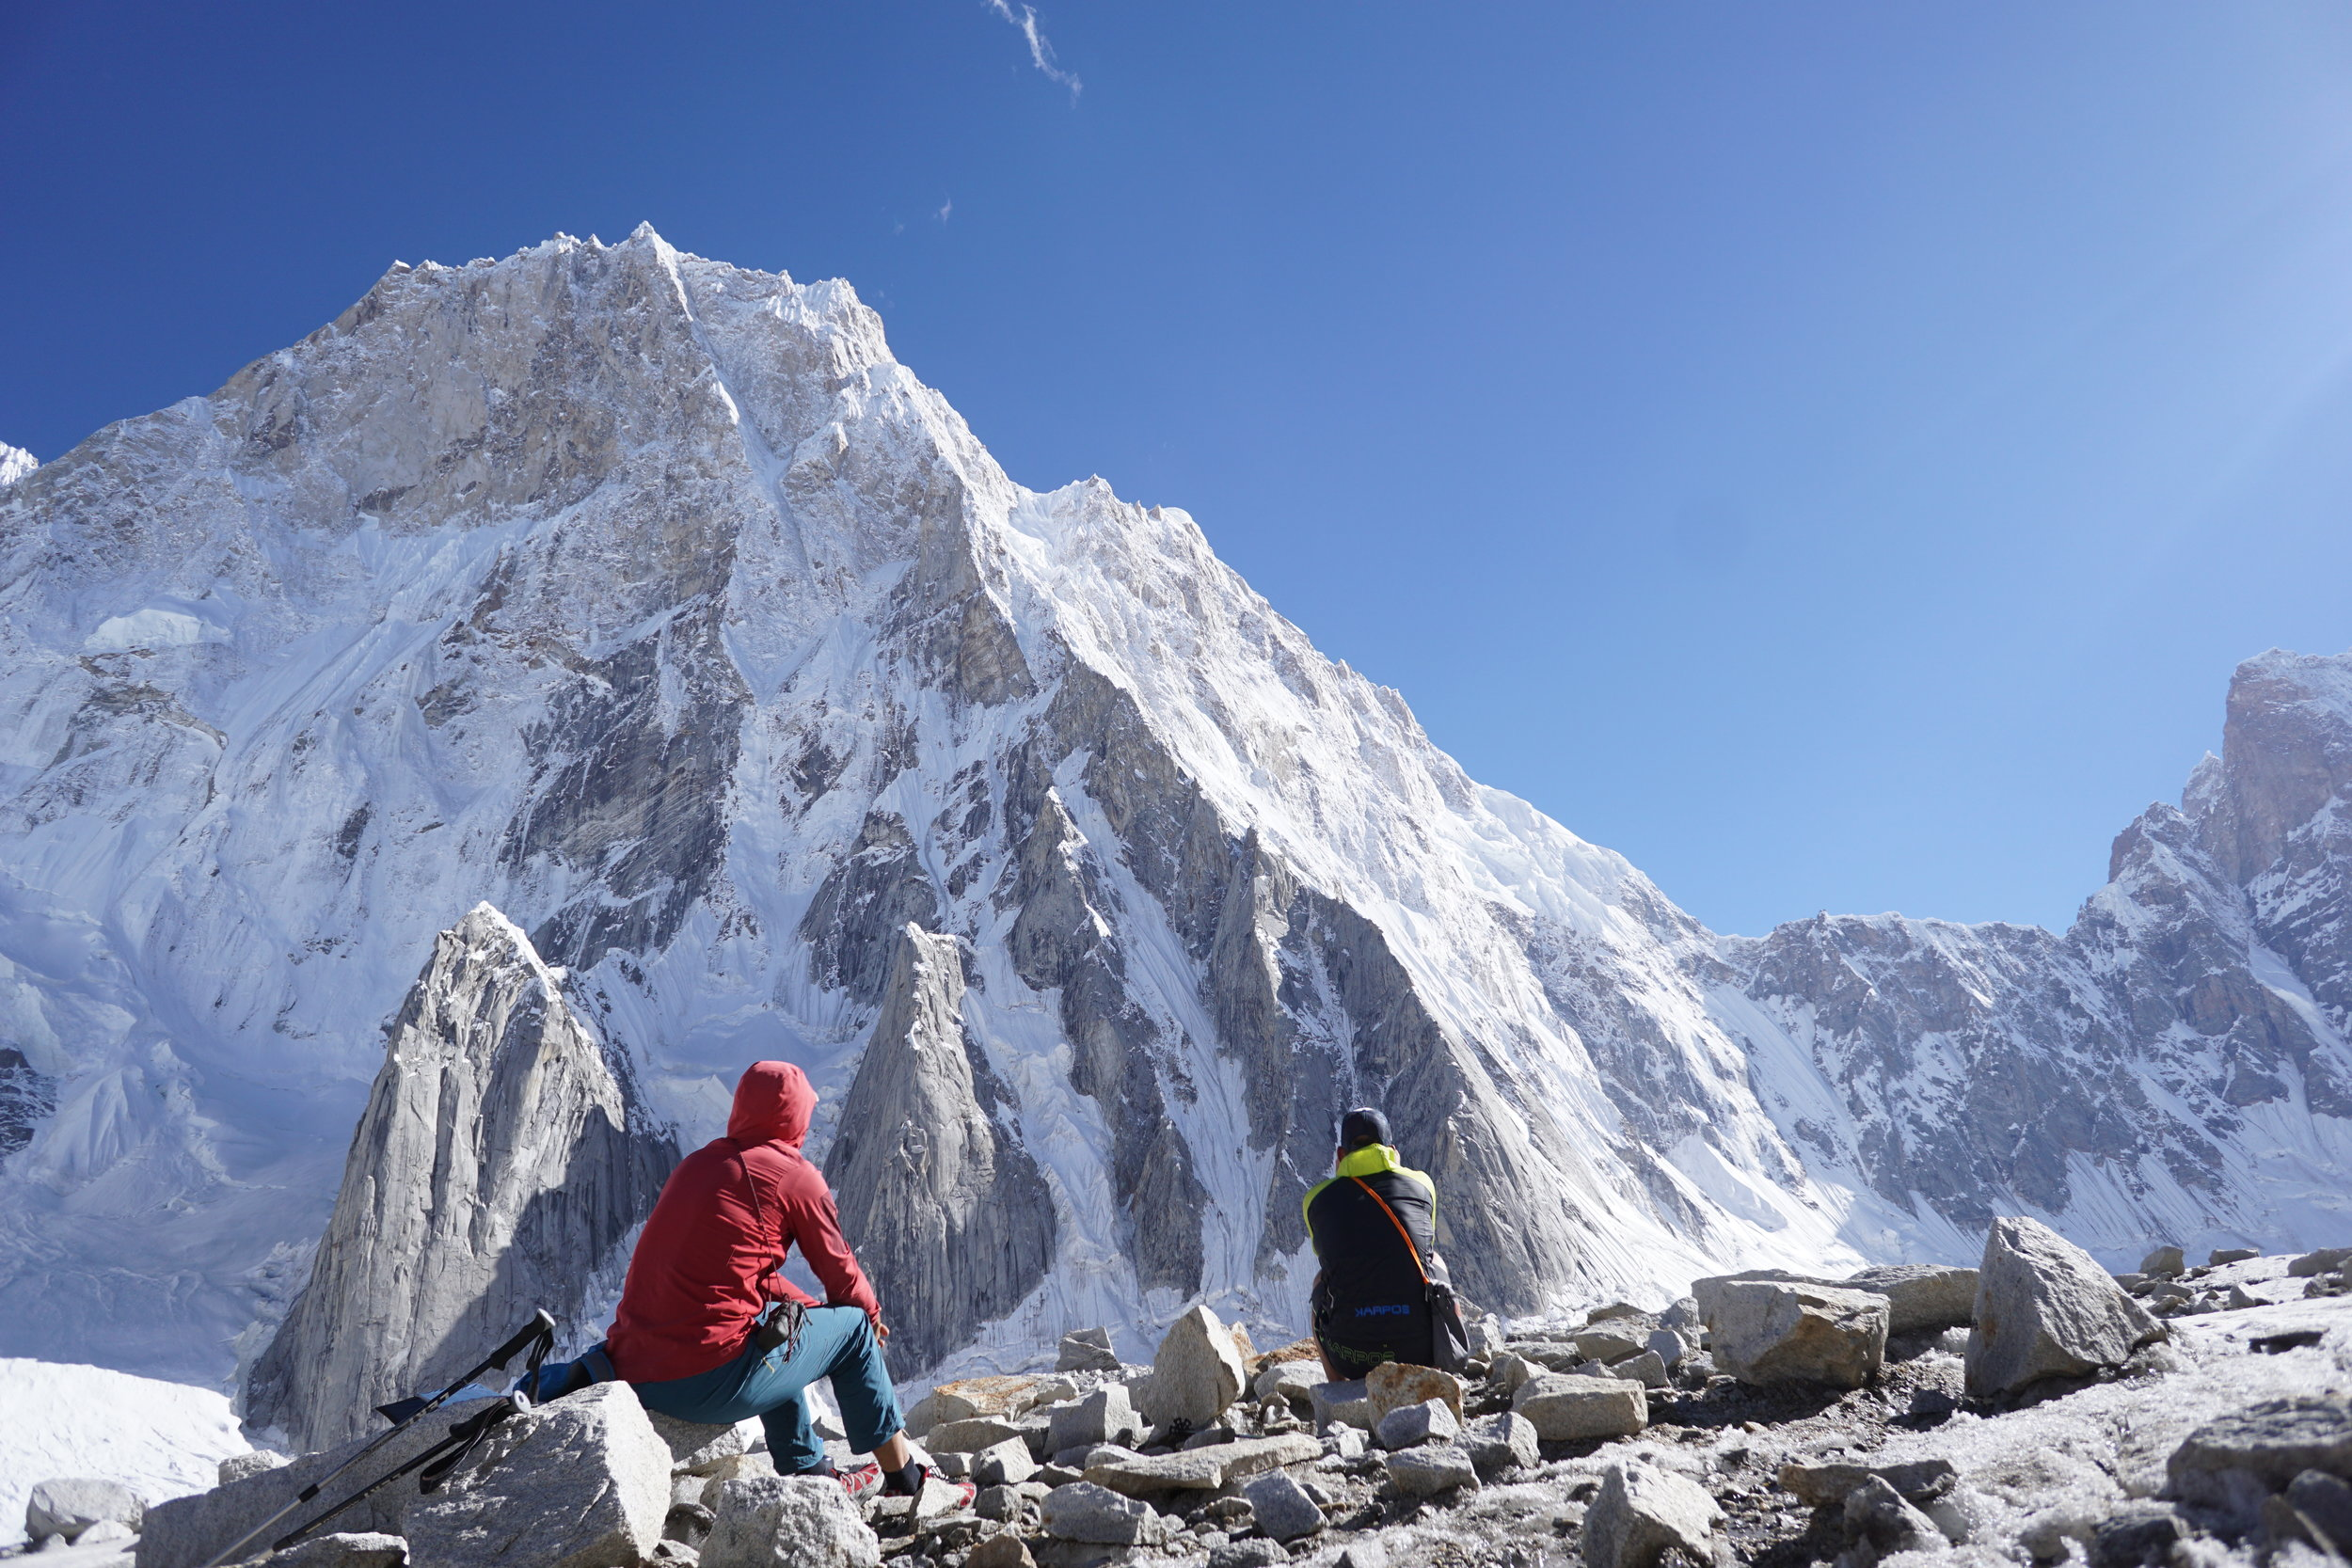 Ales and Luka scope out the North Ridge of Latok I.